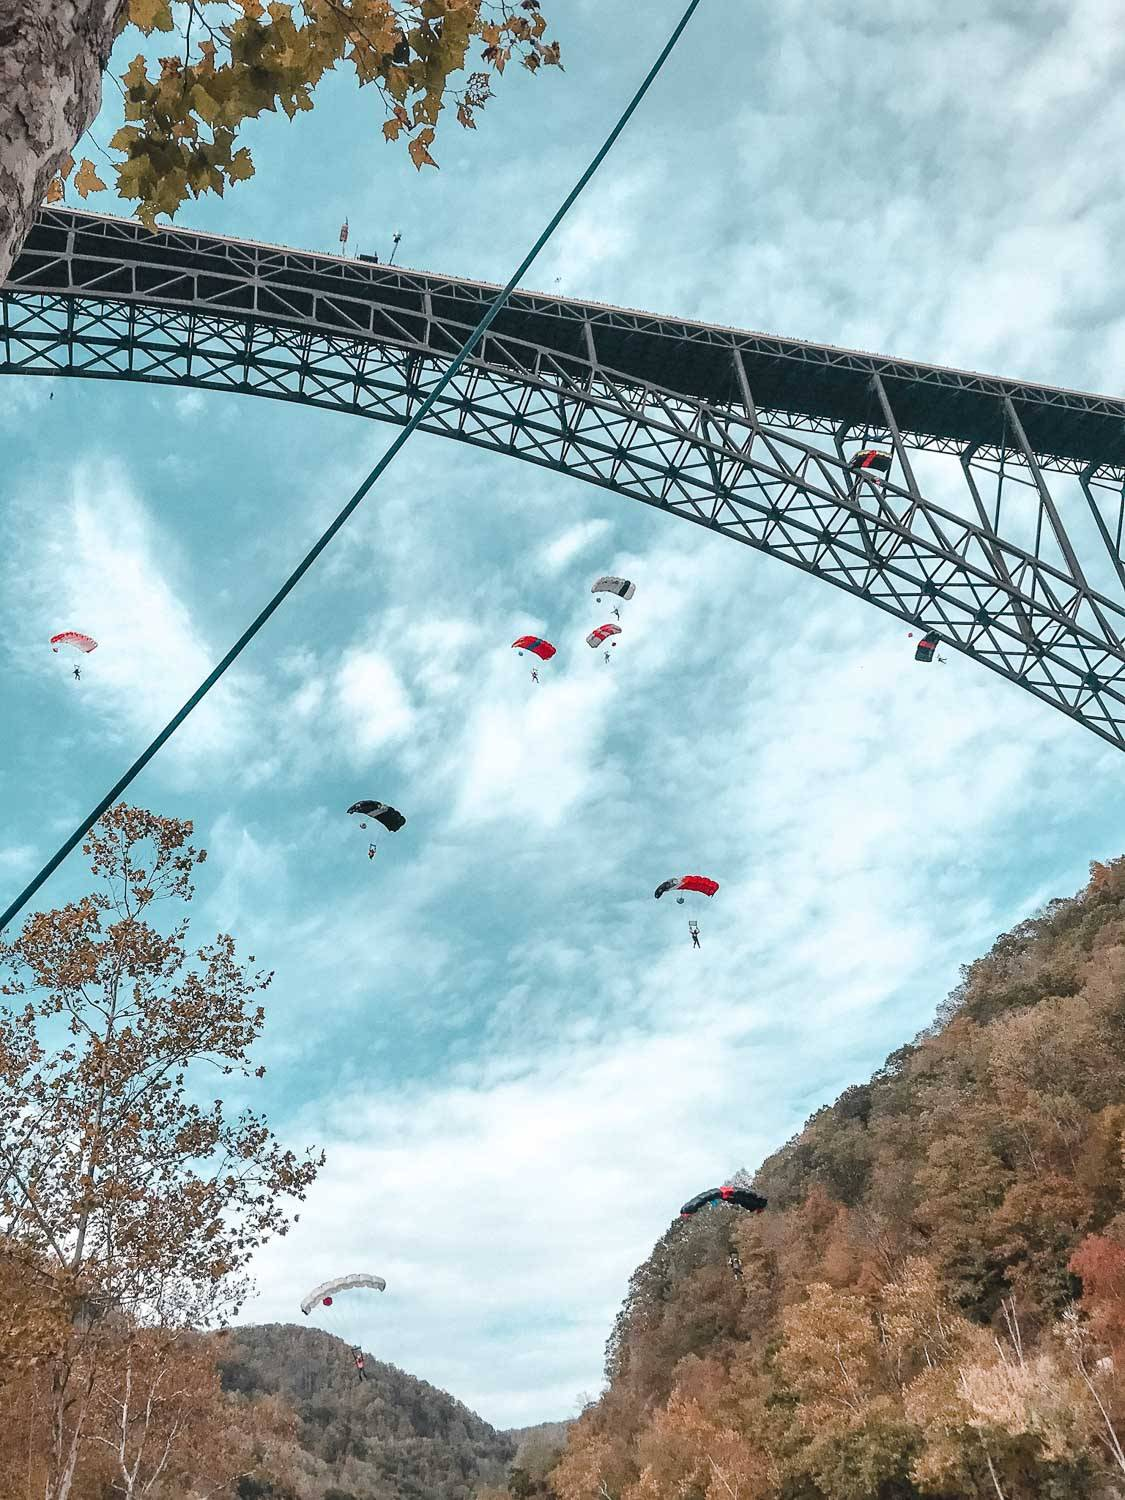 Looking for amazing things to do in Fayetteville, West Virginia? Well, look no further because we have you covered including the oh so popular Bridge Day